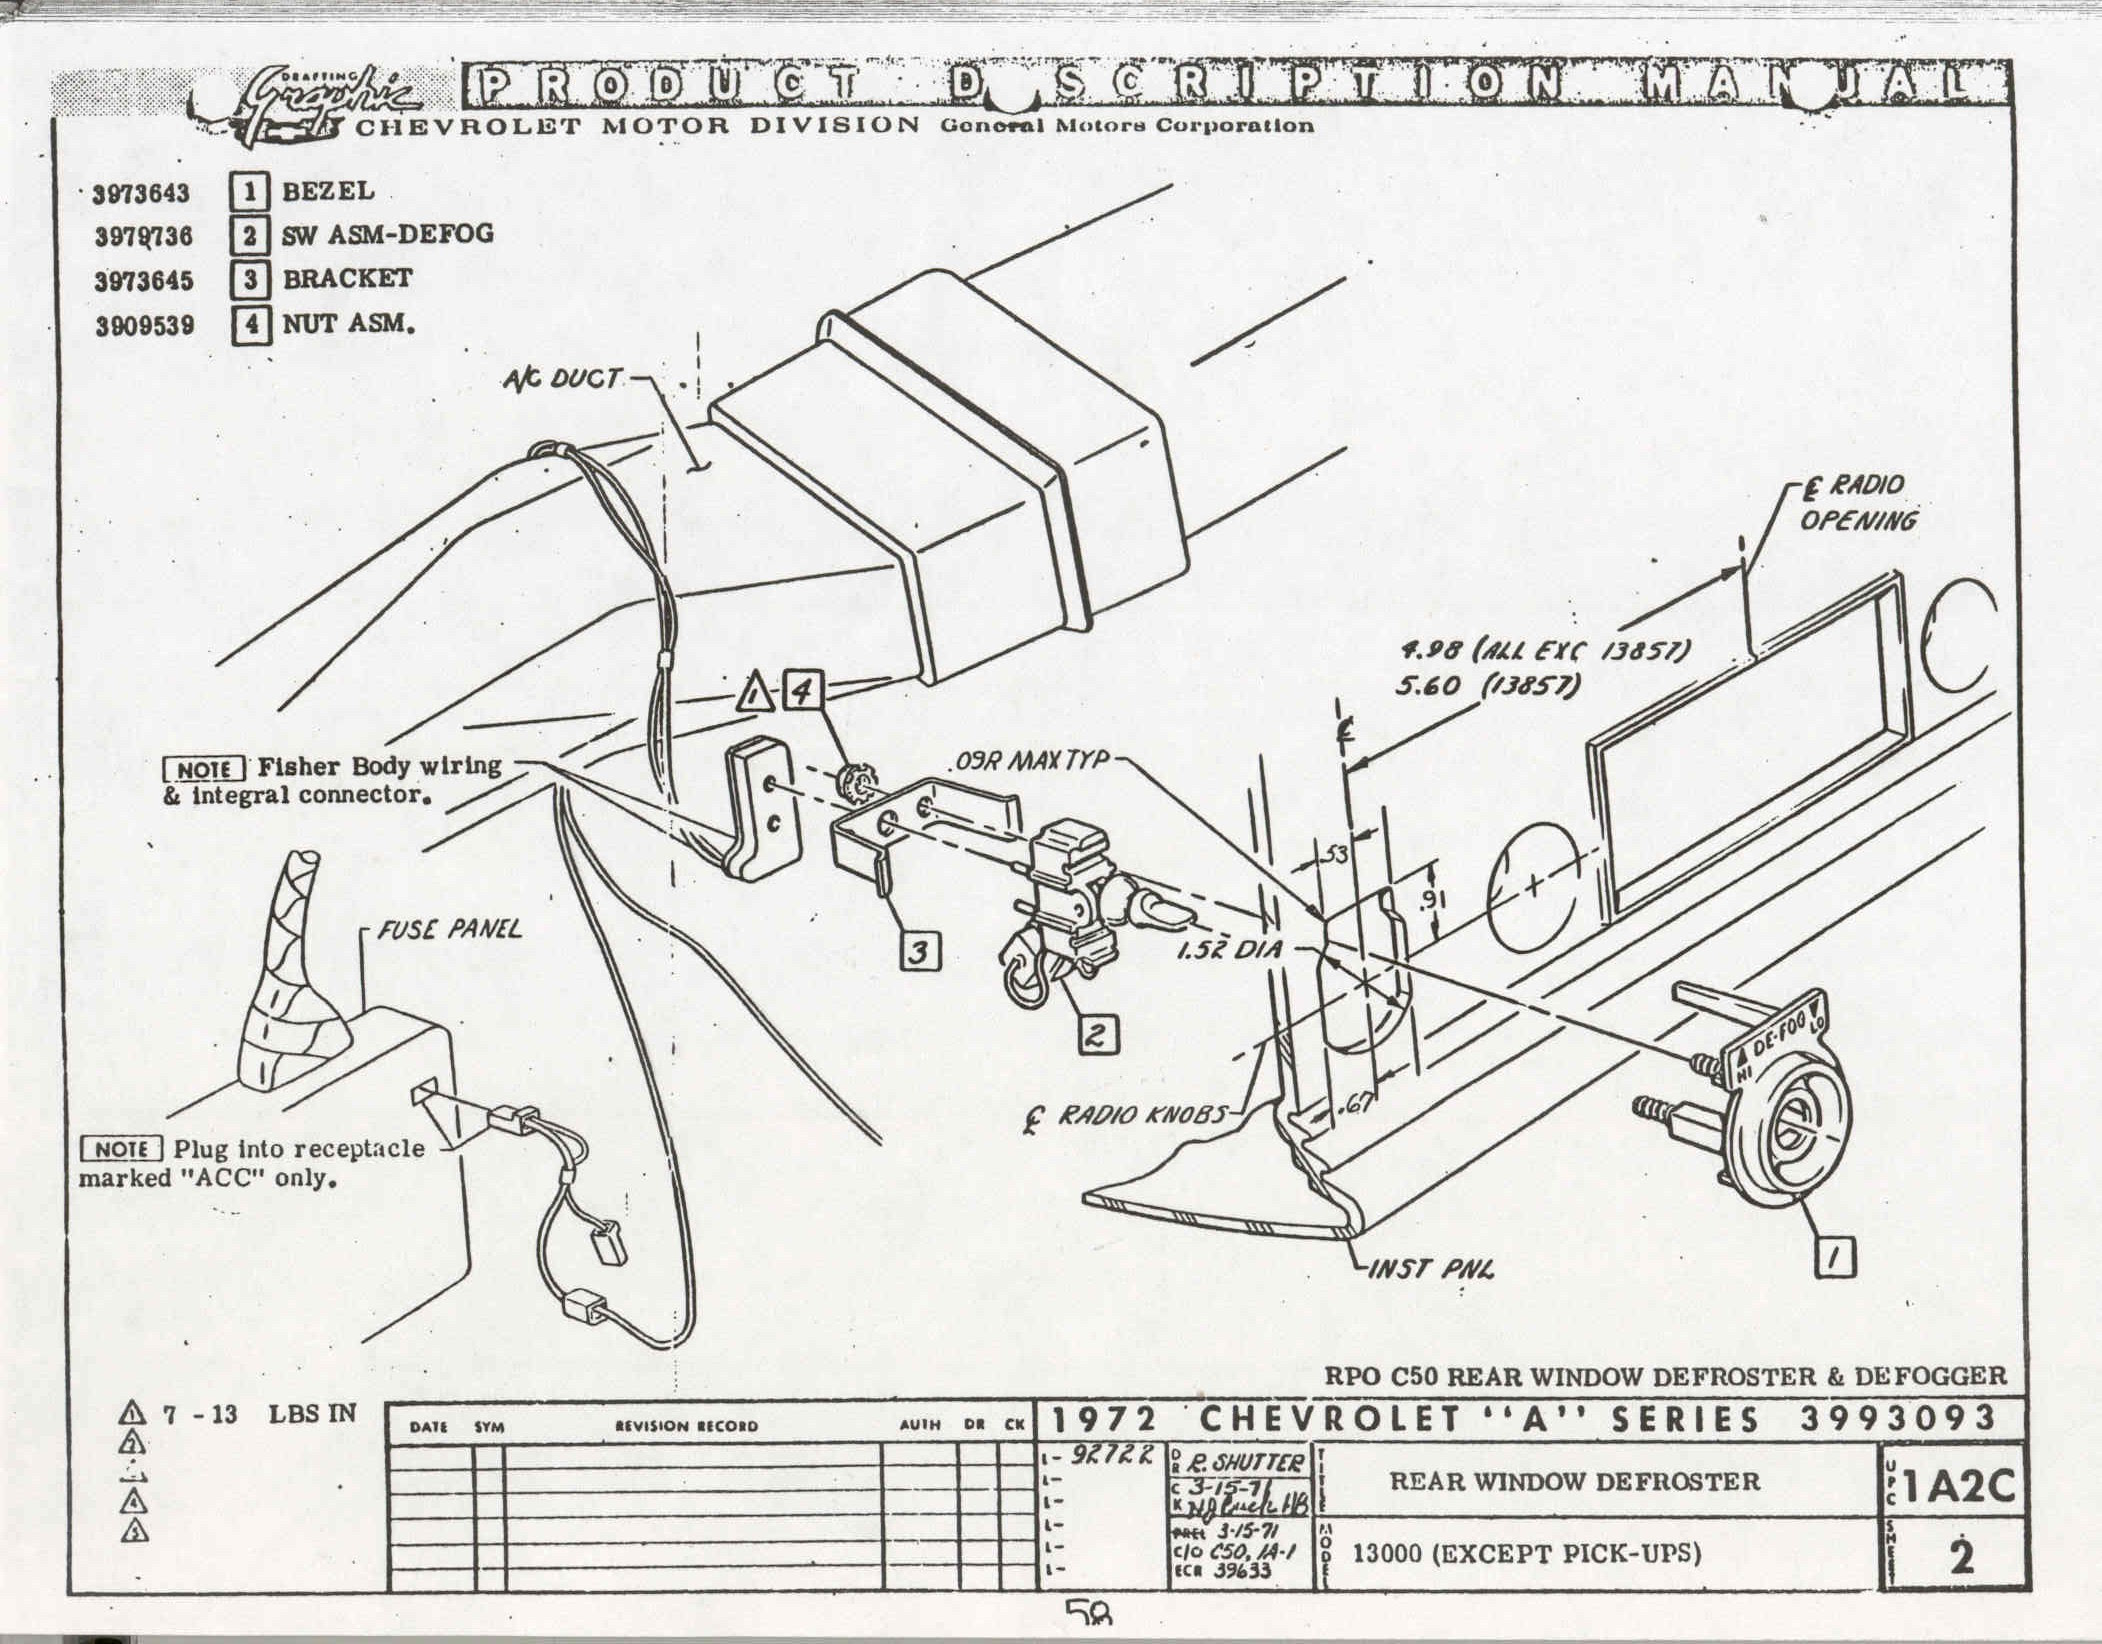 69 Chevelle Wiring Diagram For A Console Wiring Diagram For 1948 Plymouth For Wiring Diagram Schematics